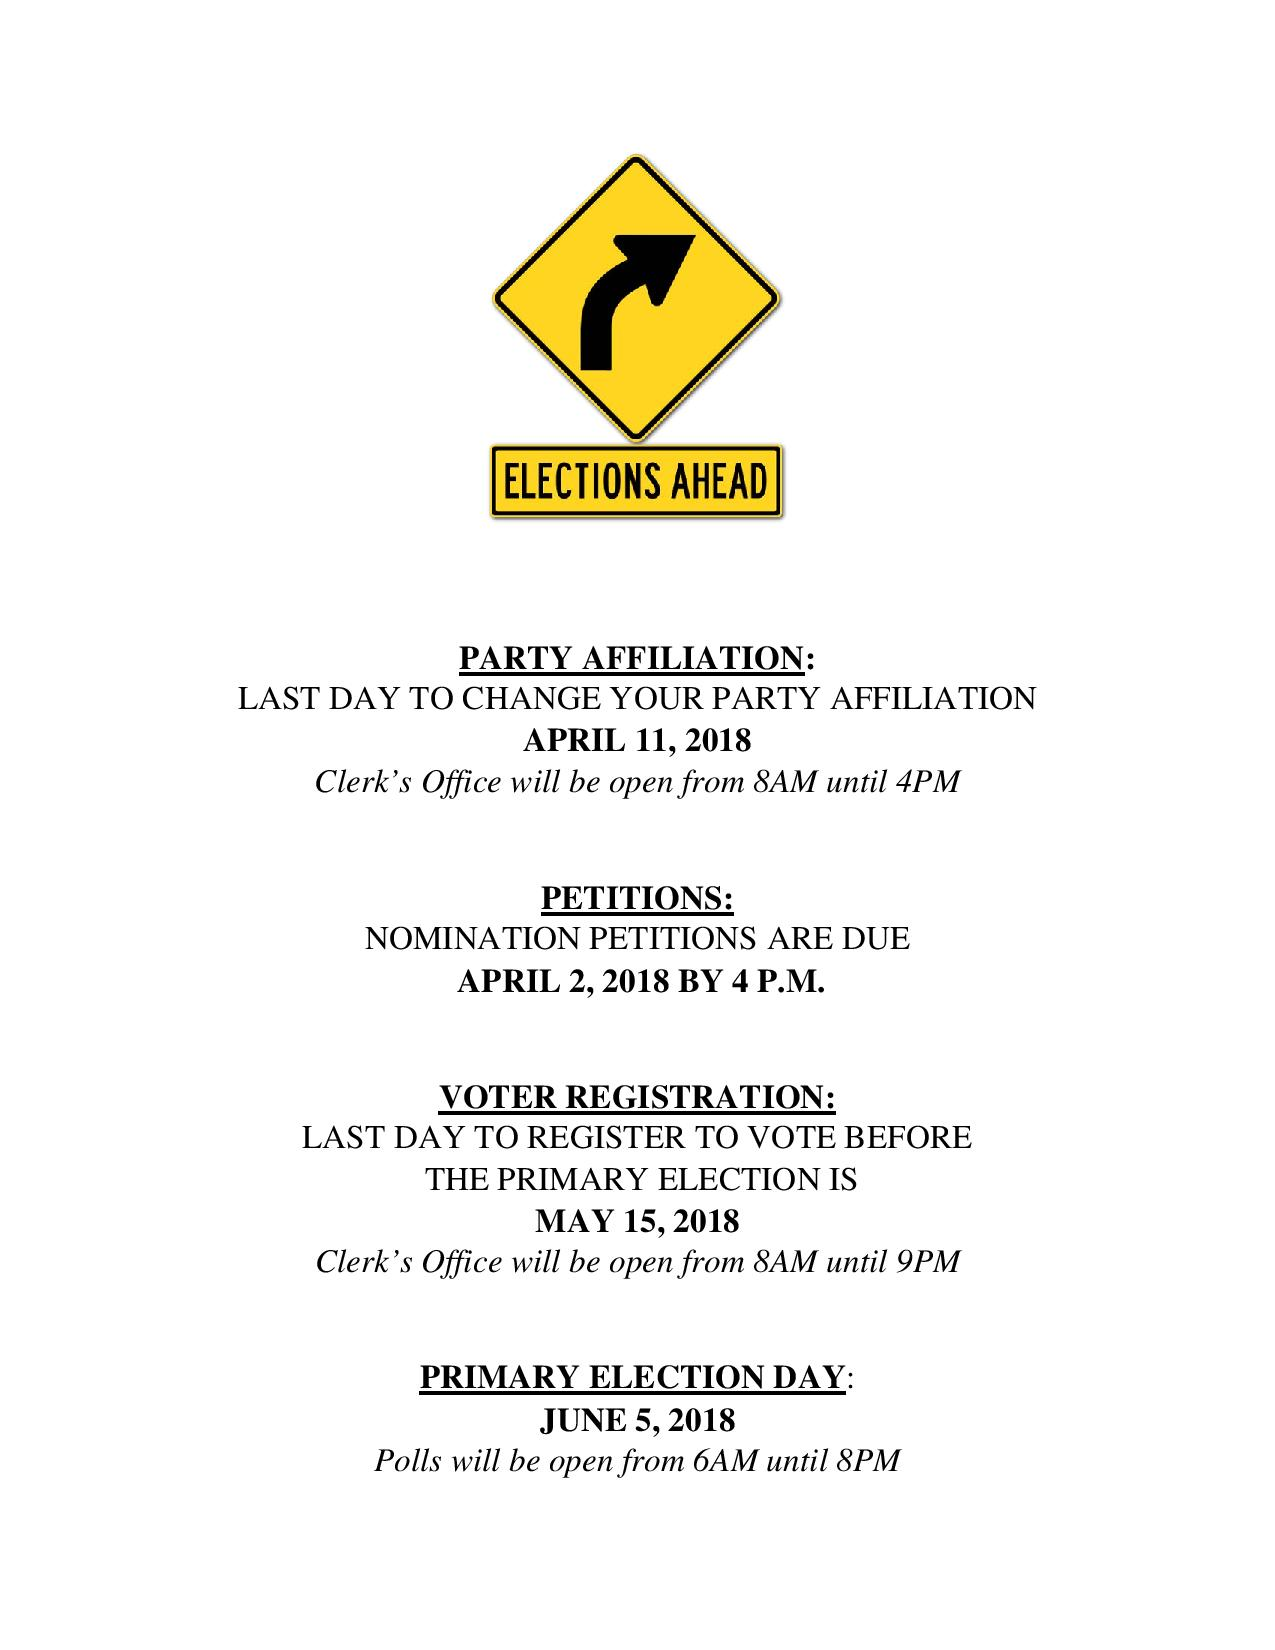 Primary election dates in Brisbane